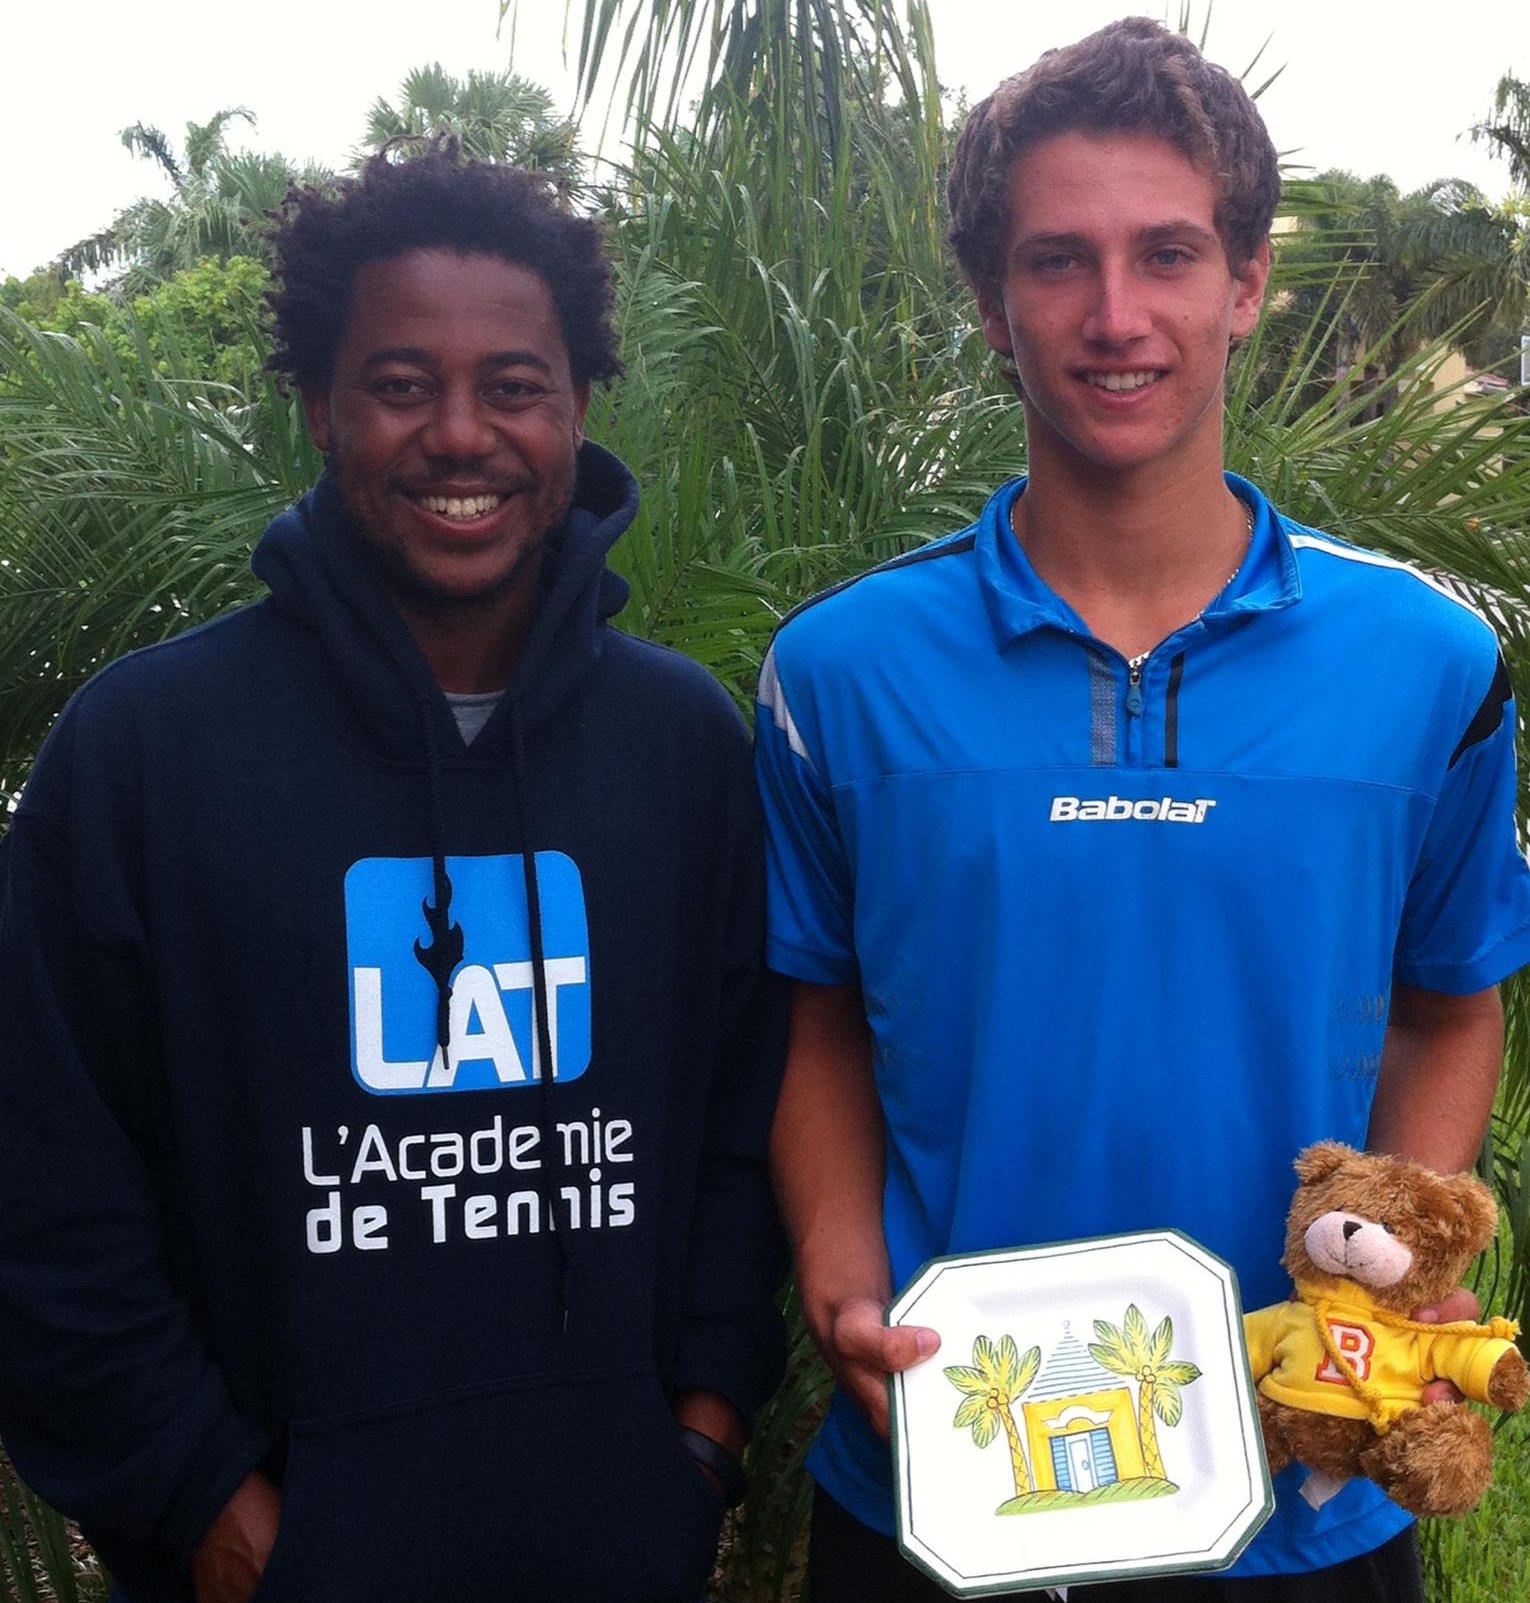 Pepperdine Univ. - Jack Van Slyke (Toronto, Canada)#137 ITF World Junior Rankingdef. Louis Wessels (#17 ITF Juniors)